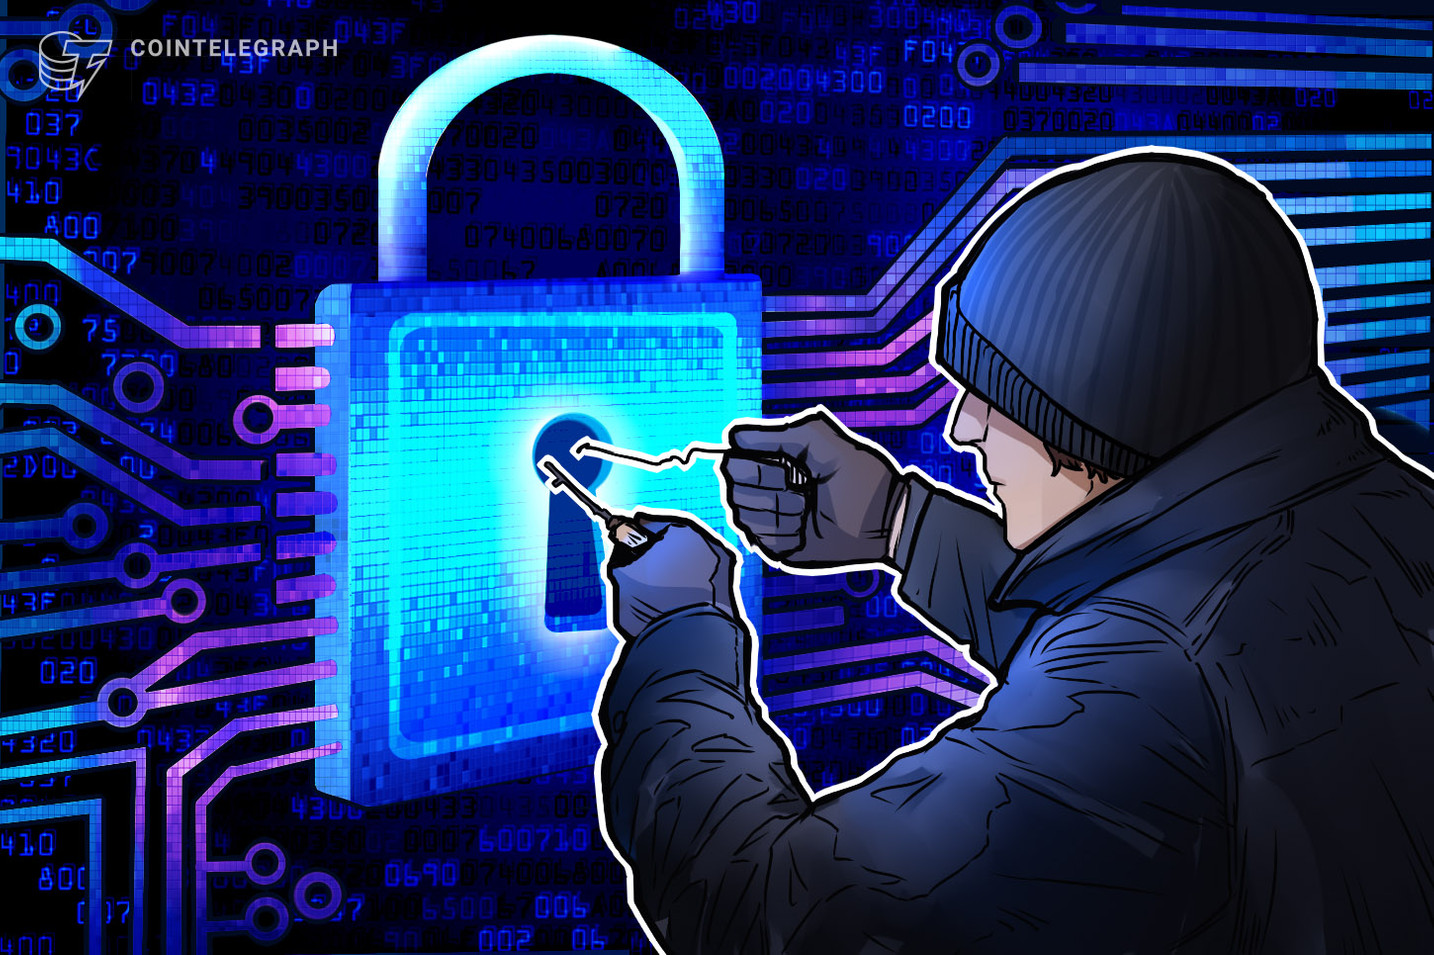 Parity Technologies Fixes Node Vulnerability, Urges All Ethereum Nodes to Update